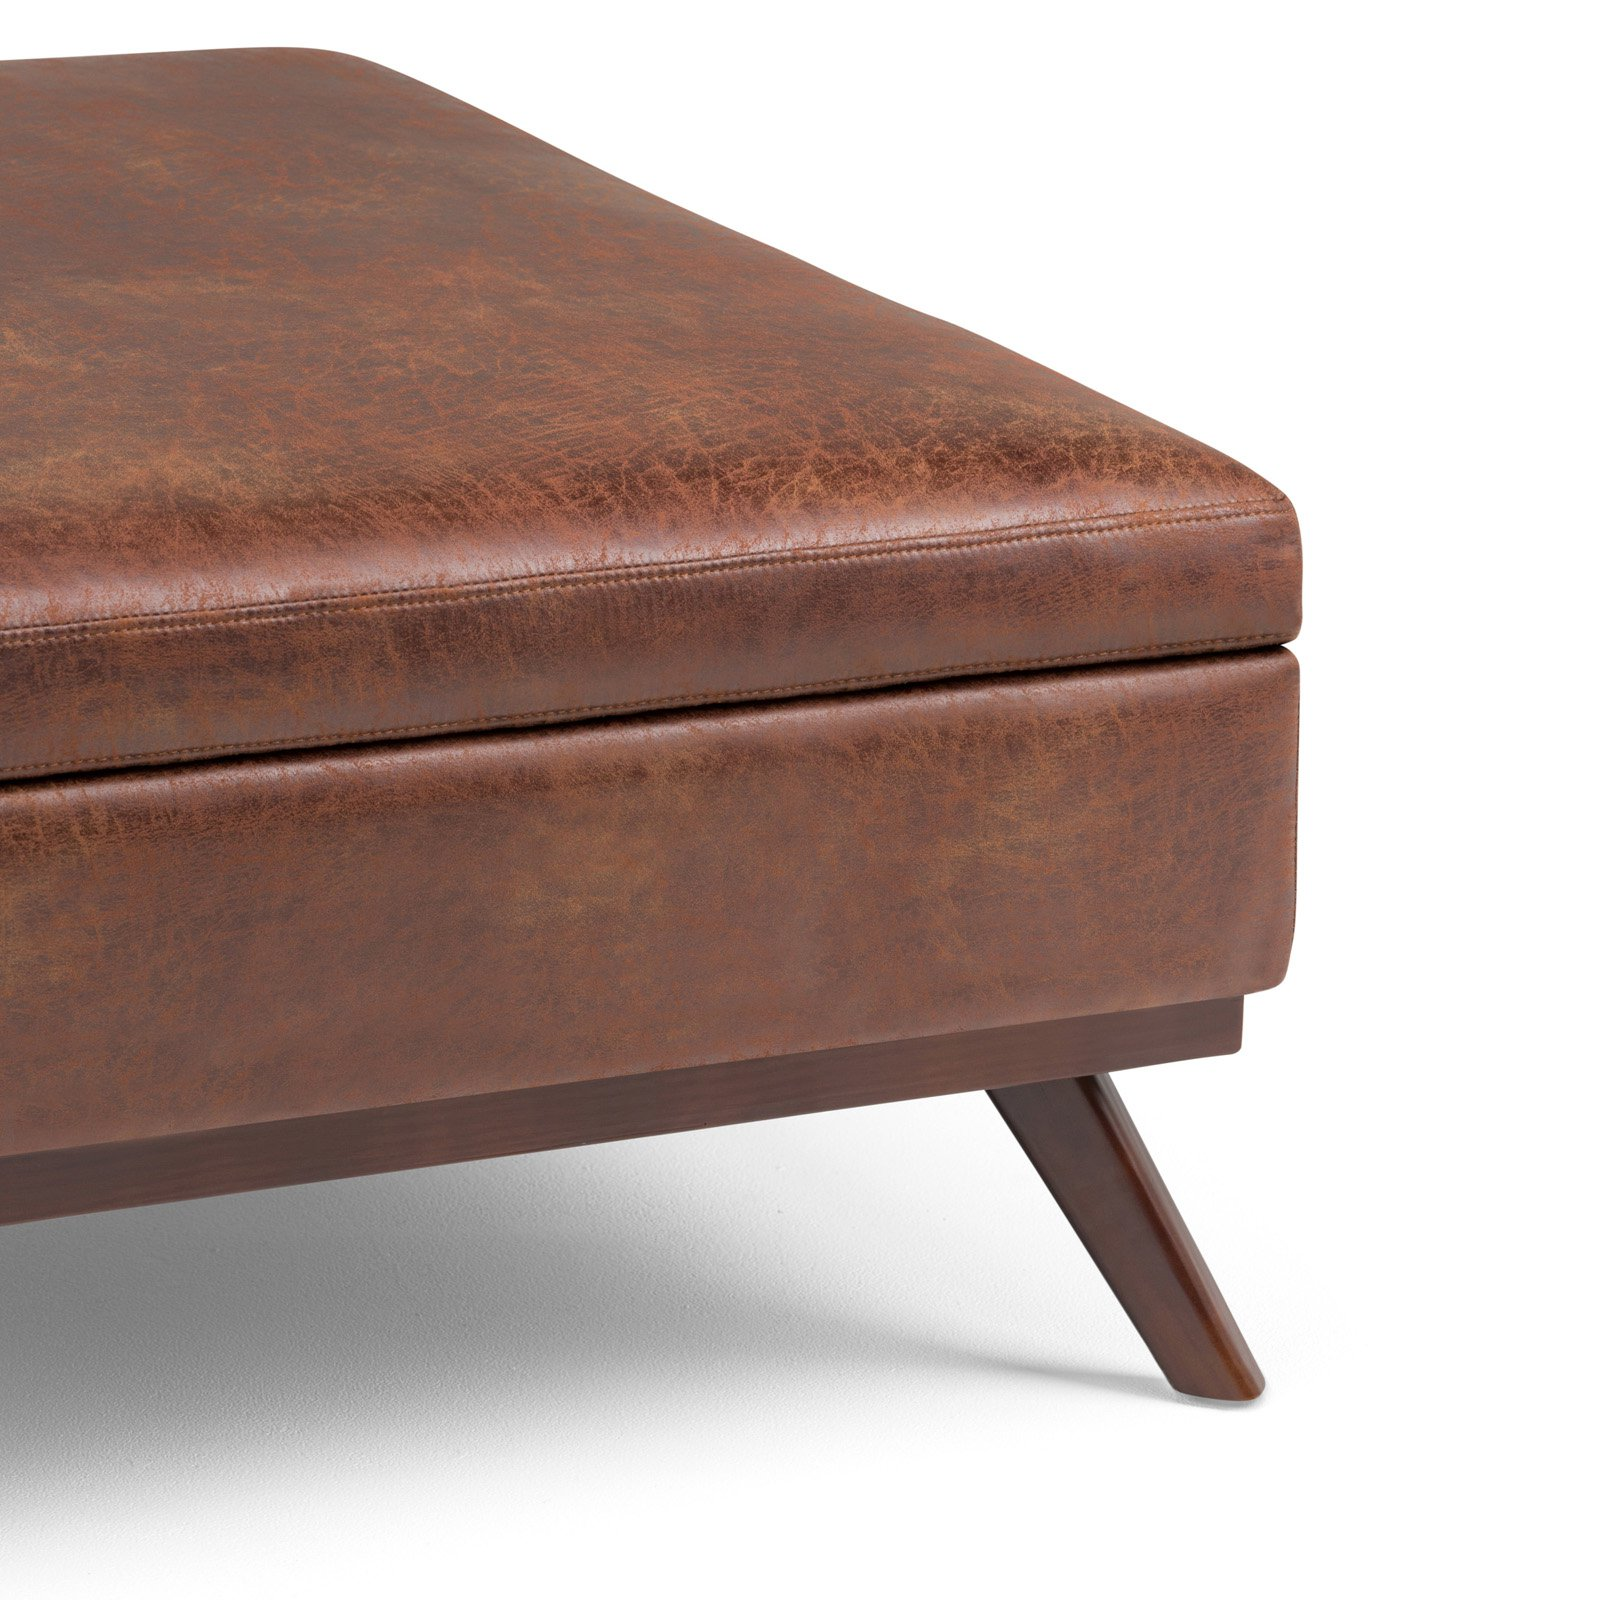 Terrific Simpli Home Owen Square Coffee Table Ottoman With Storage Andrewgaddart Wooden Chair Designs For Living Room Andrewgaddartcom